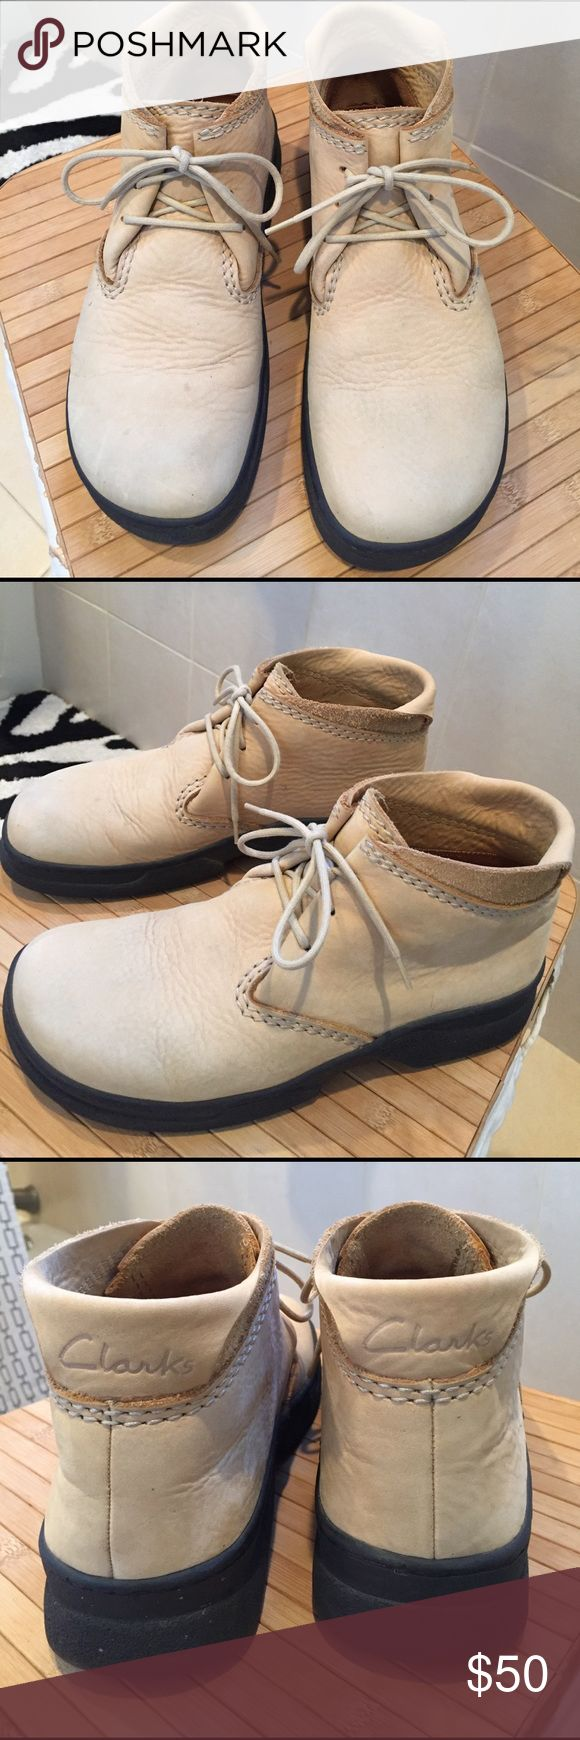 Men's Clarks Wallabee Style Walking Shoes These pair of Clarks are in great condition. Soles are very good. They are Wallabee style ankle booties. Great for walking,traveling, all Suede and leather. Clarks Shoes